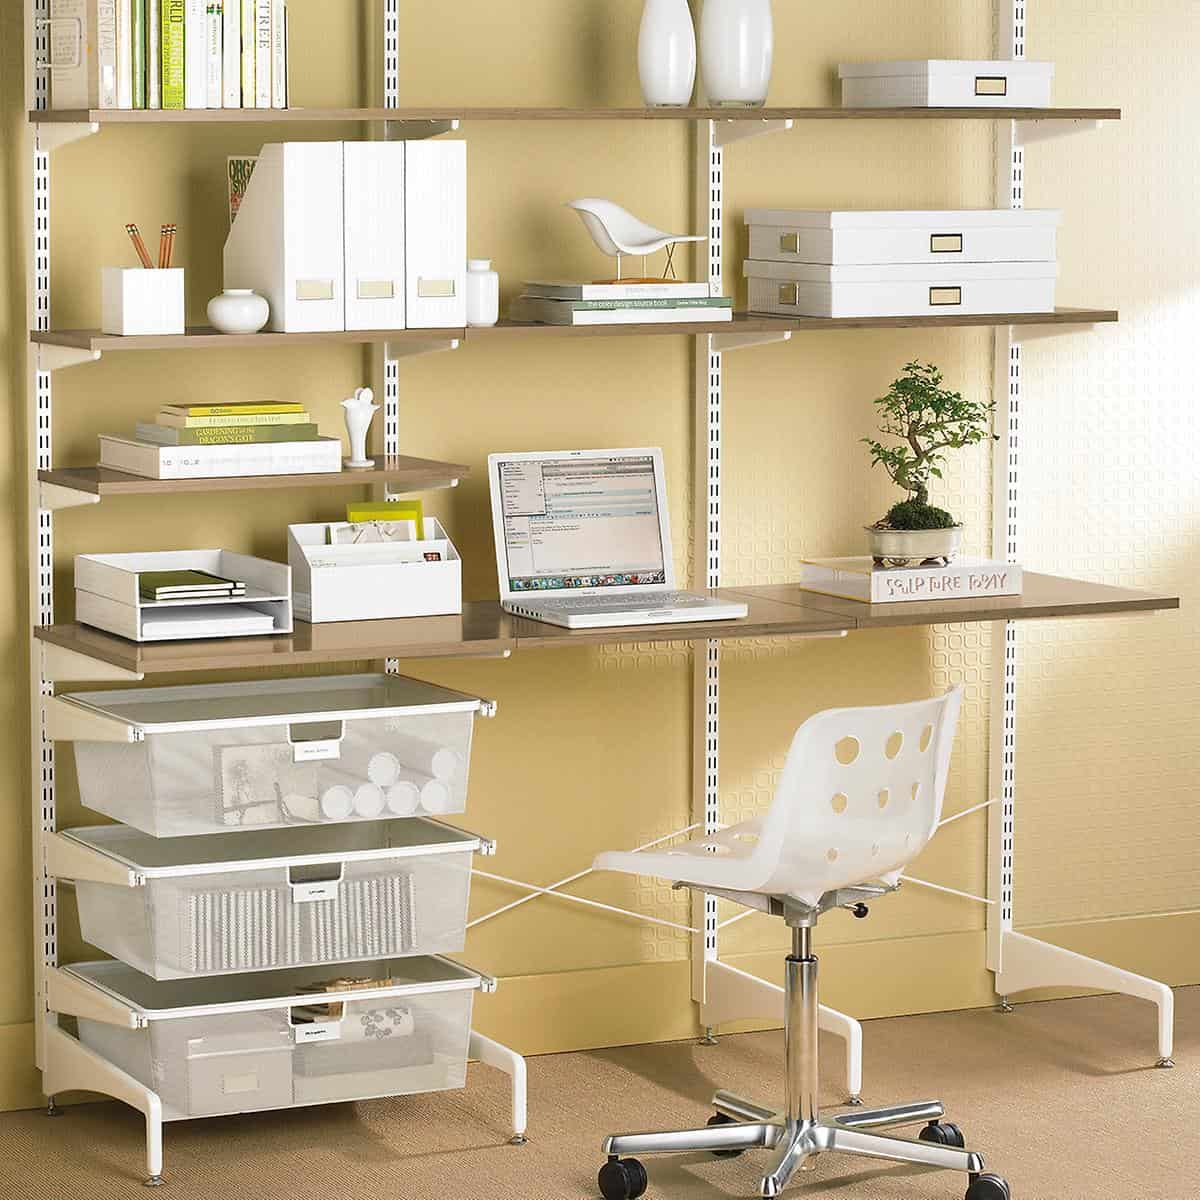 12 Brilliant Home Office Wall Organization Ideas - Live Better Lifestyle